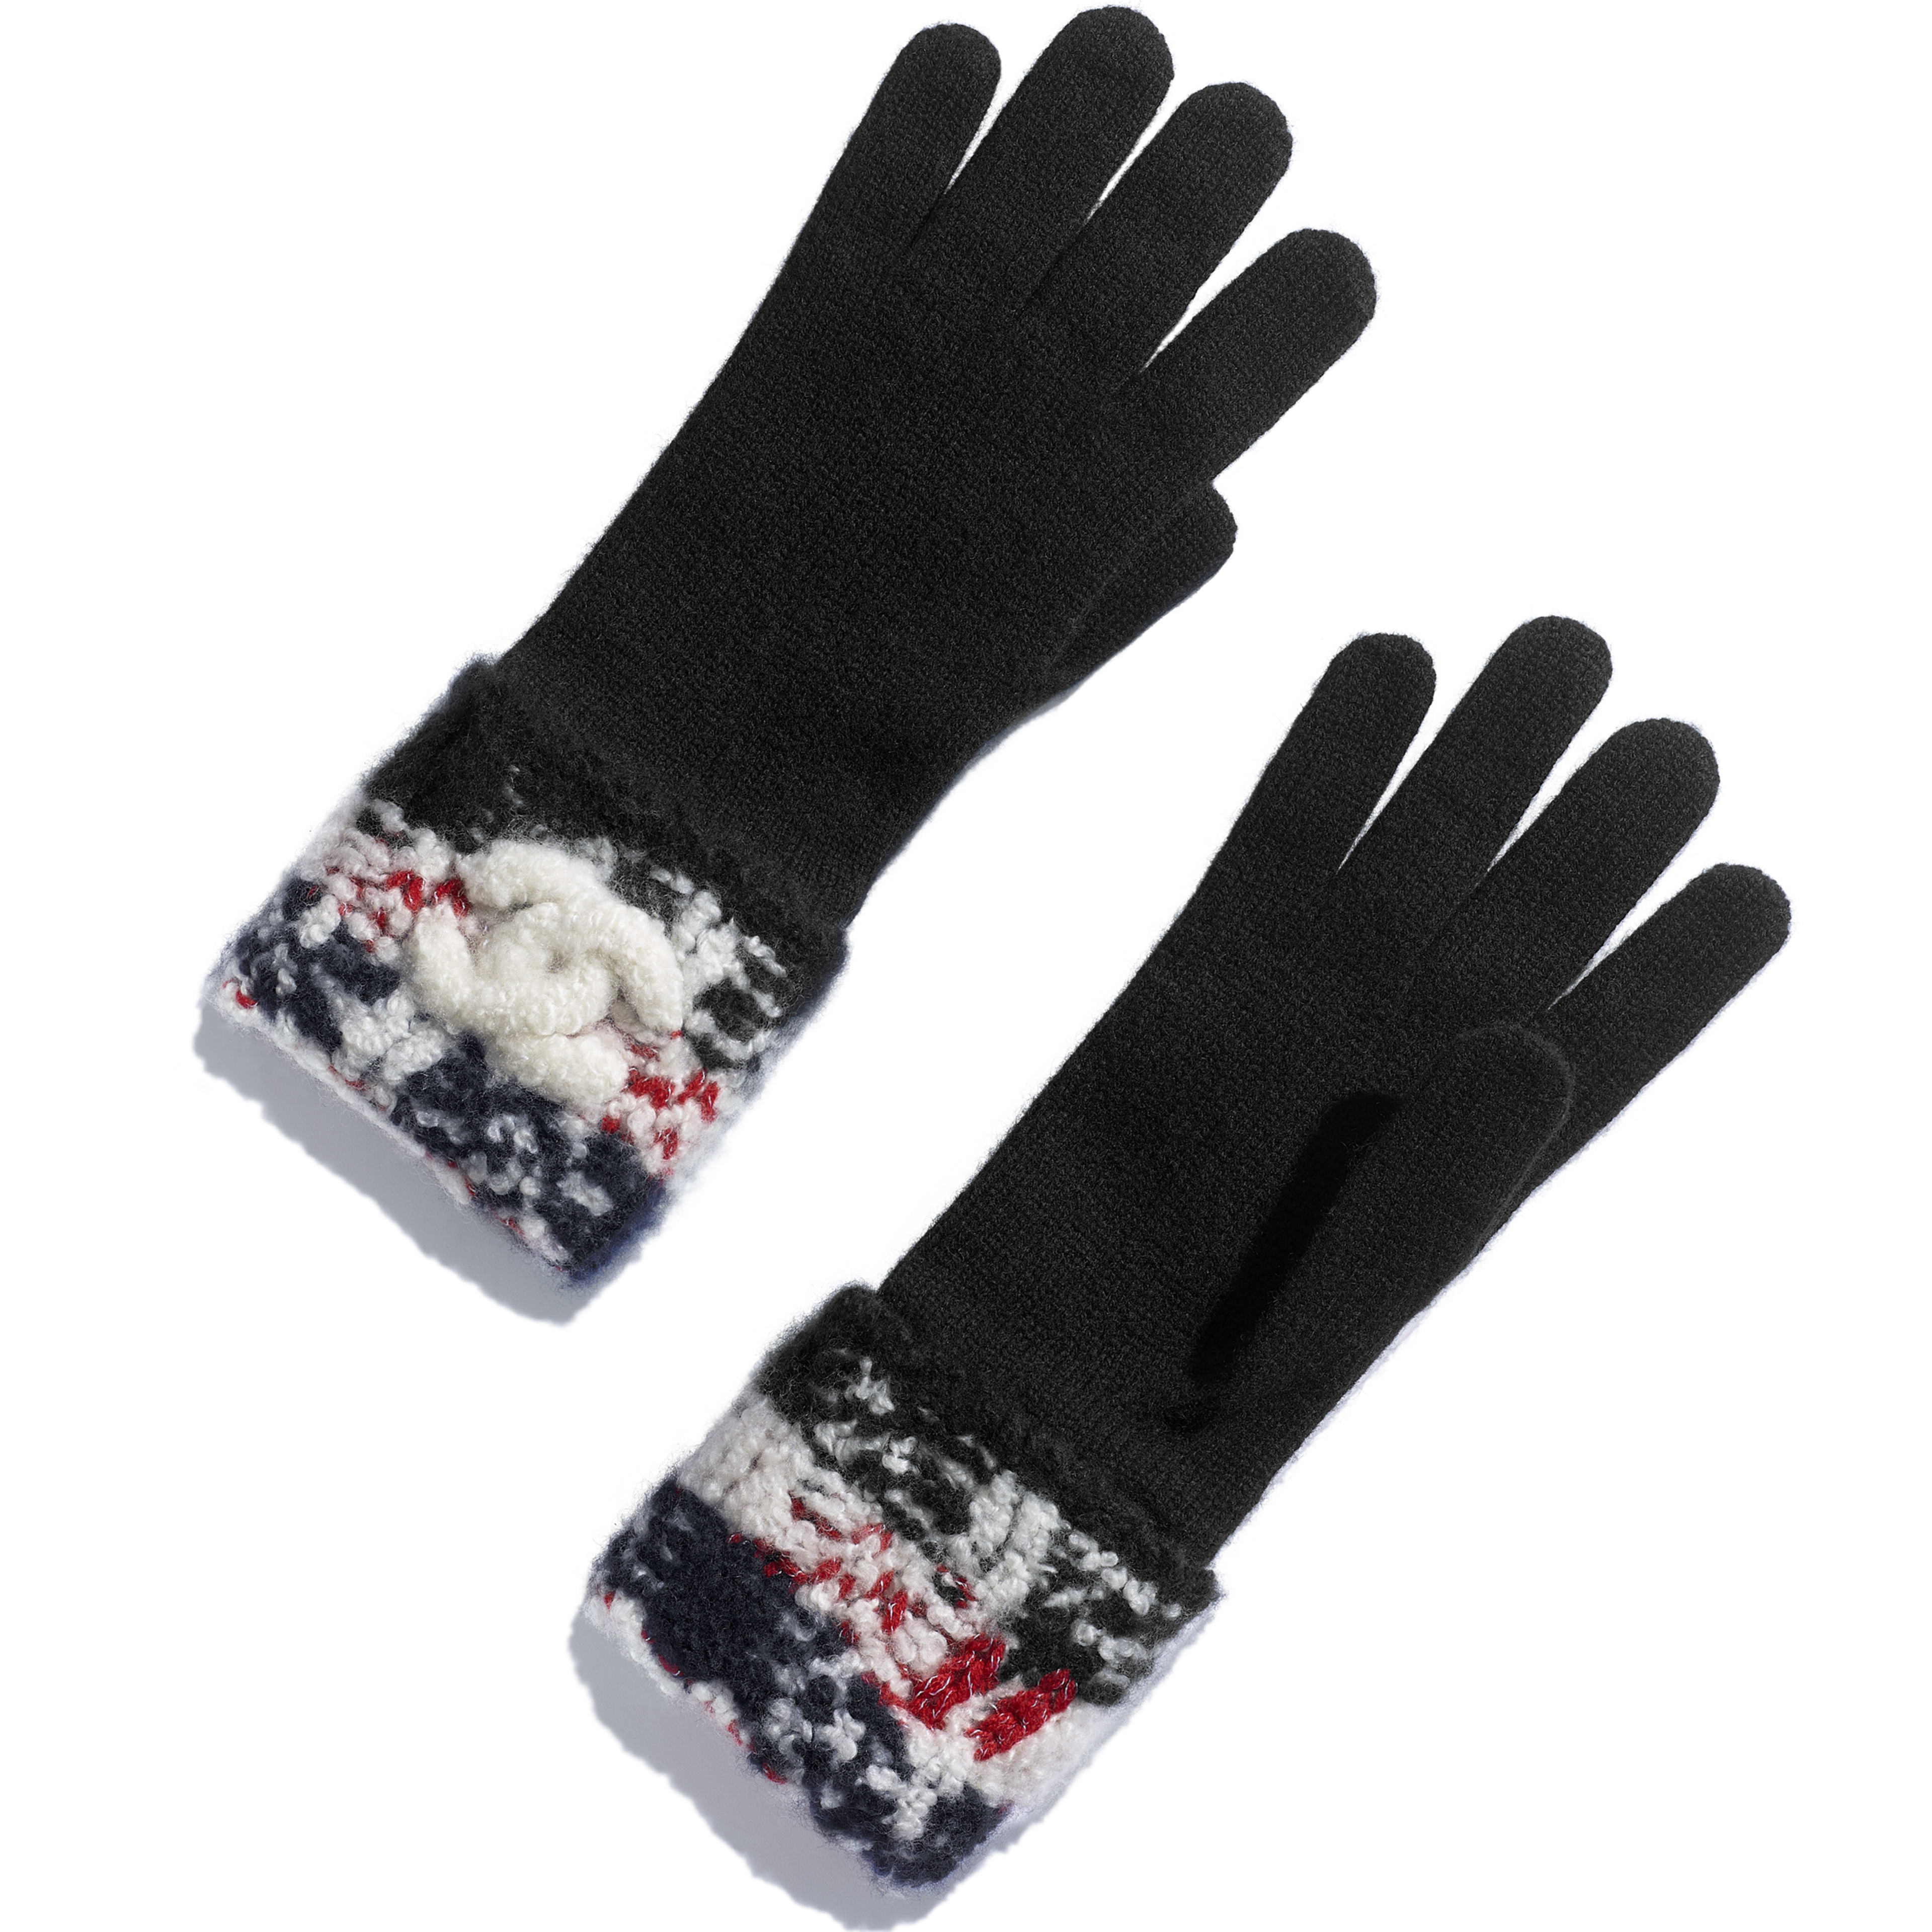 Gloves - Red & Black - Cashmere - Default view - see full sized version